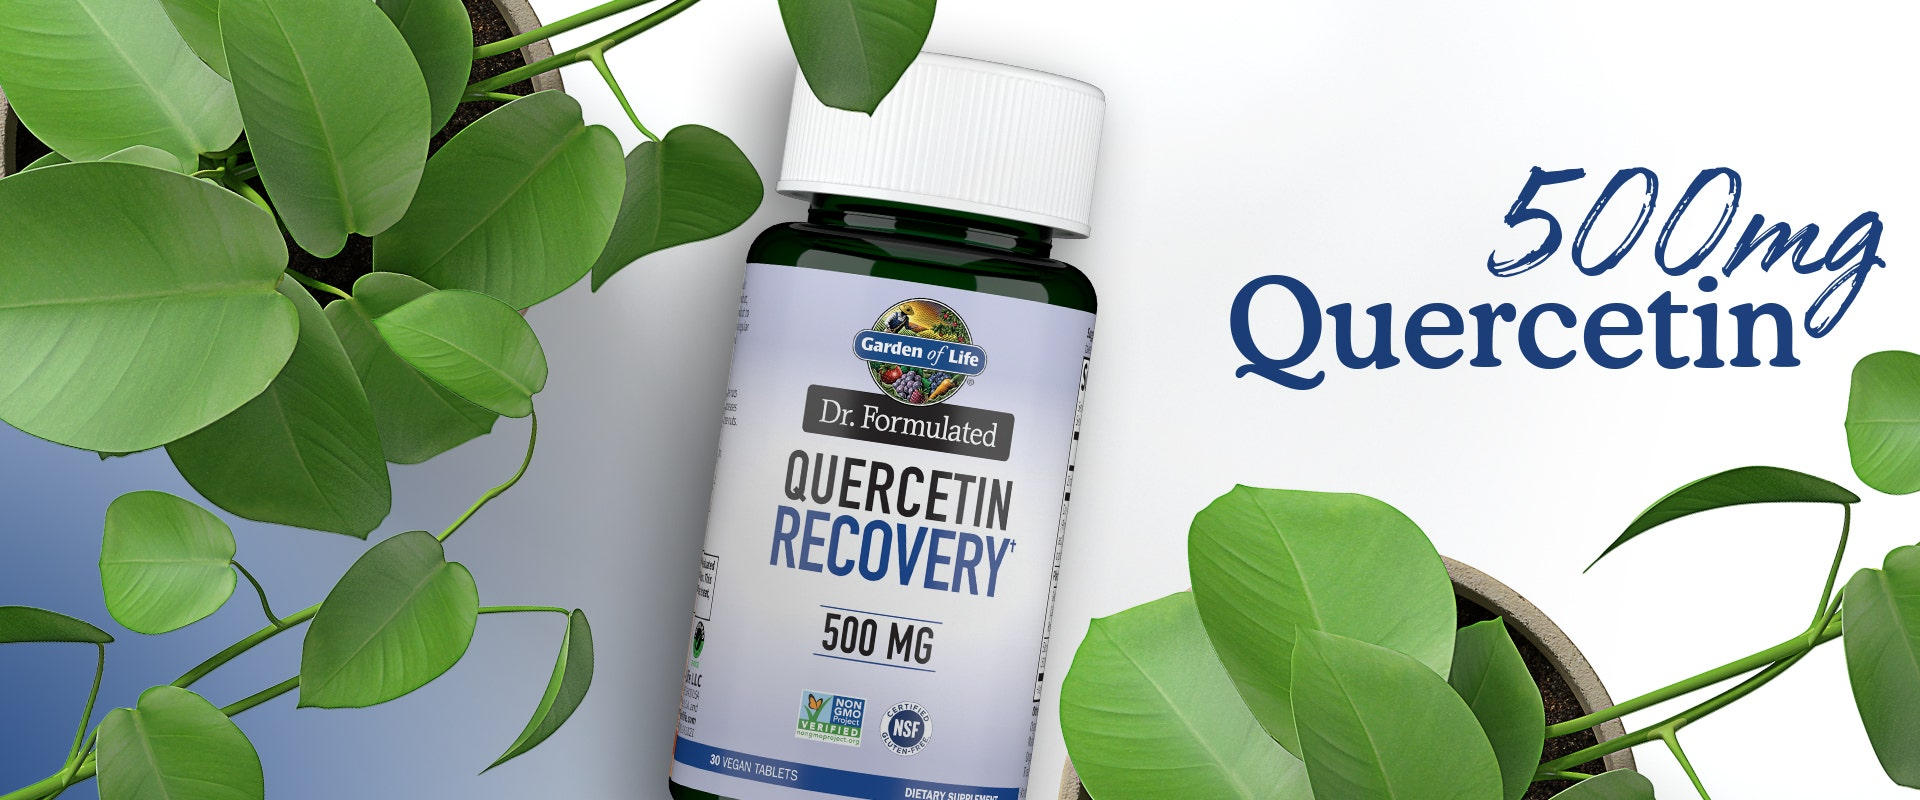 probiotics dr formulated quercetin recovery 500mg